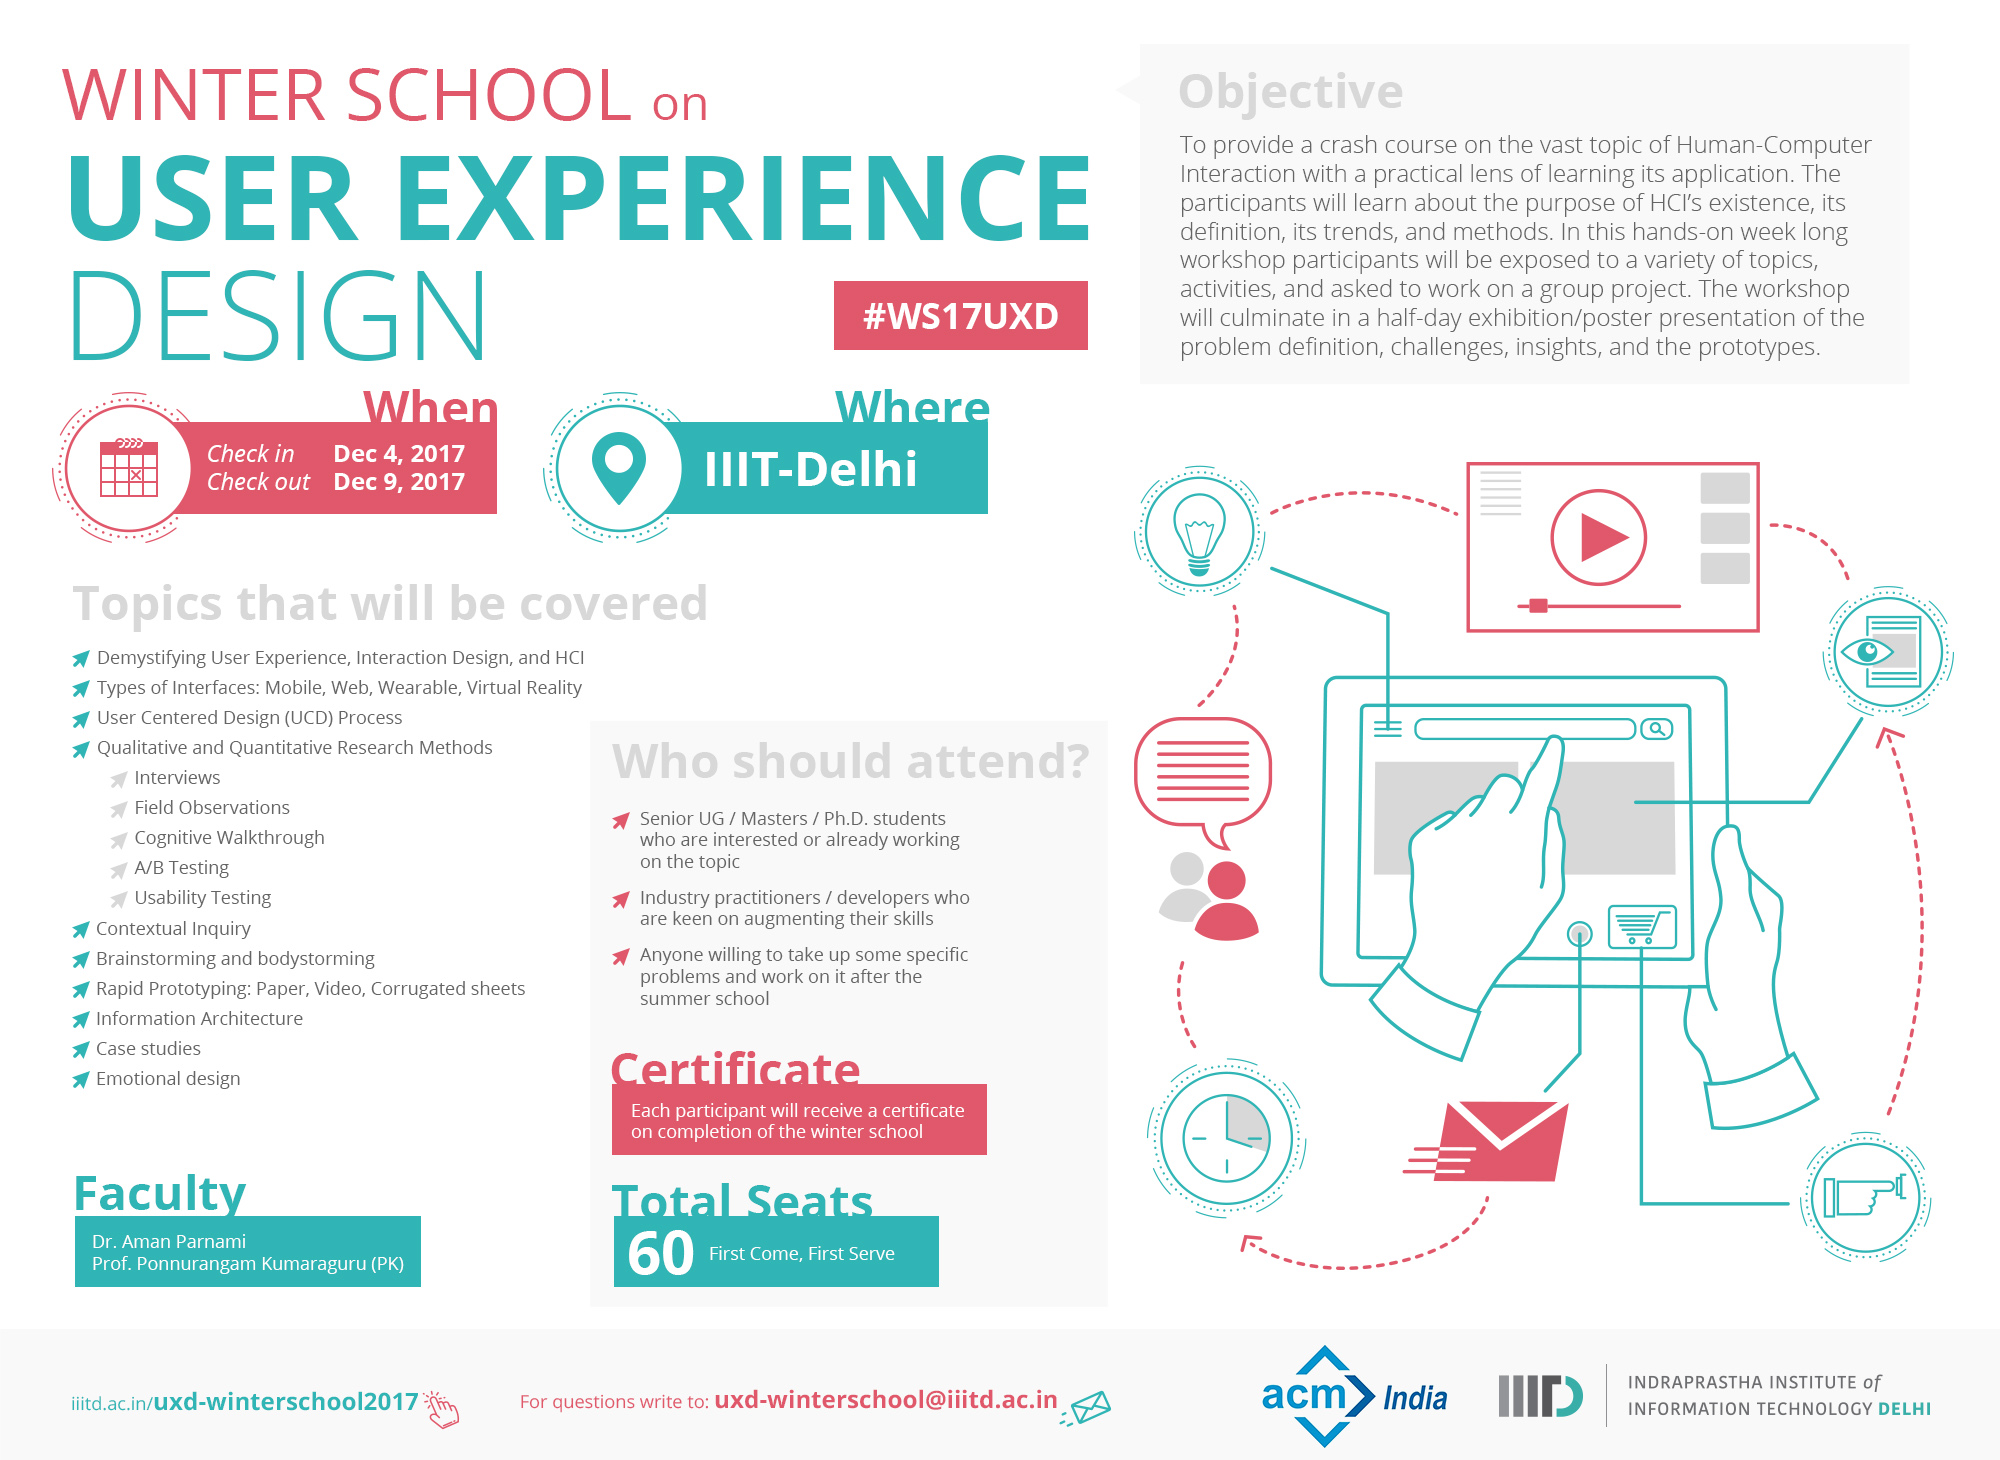 Winter School On User Experience Design 2018